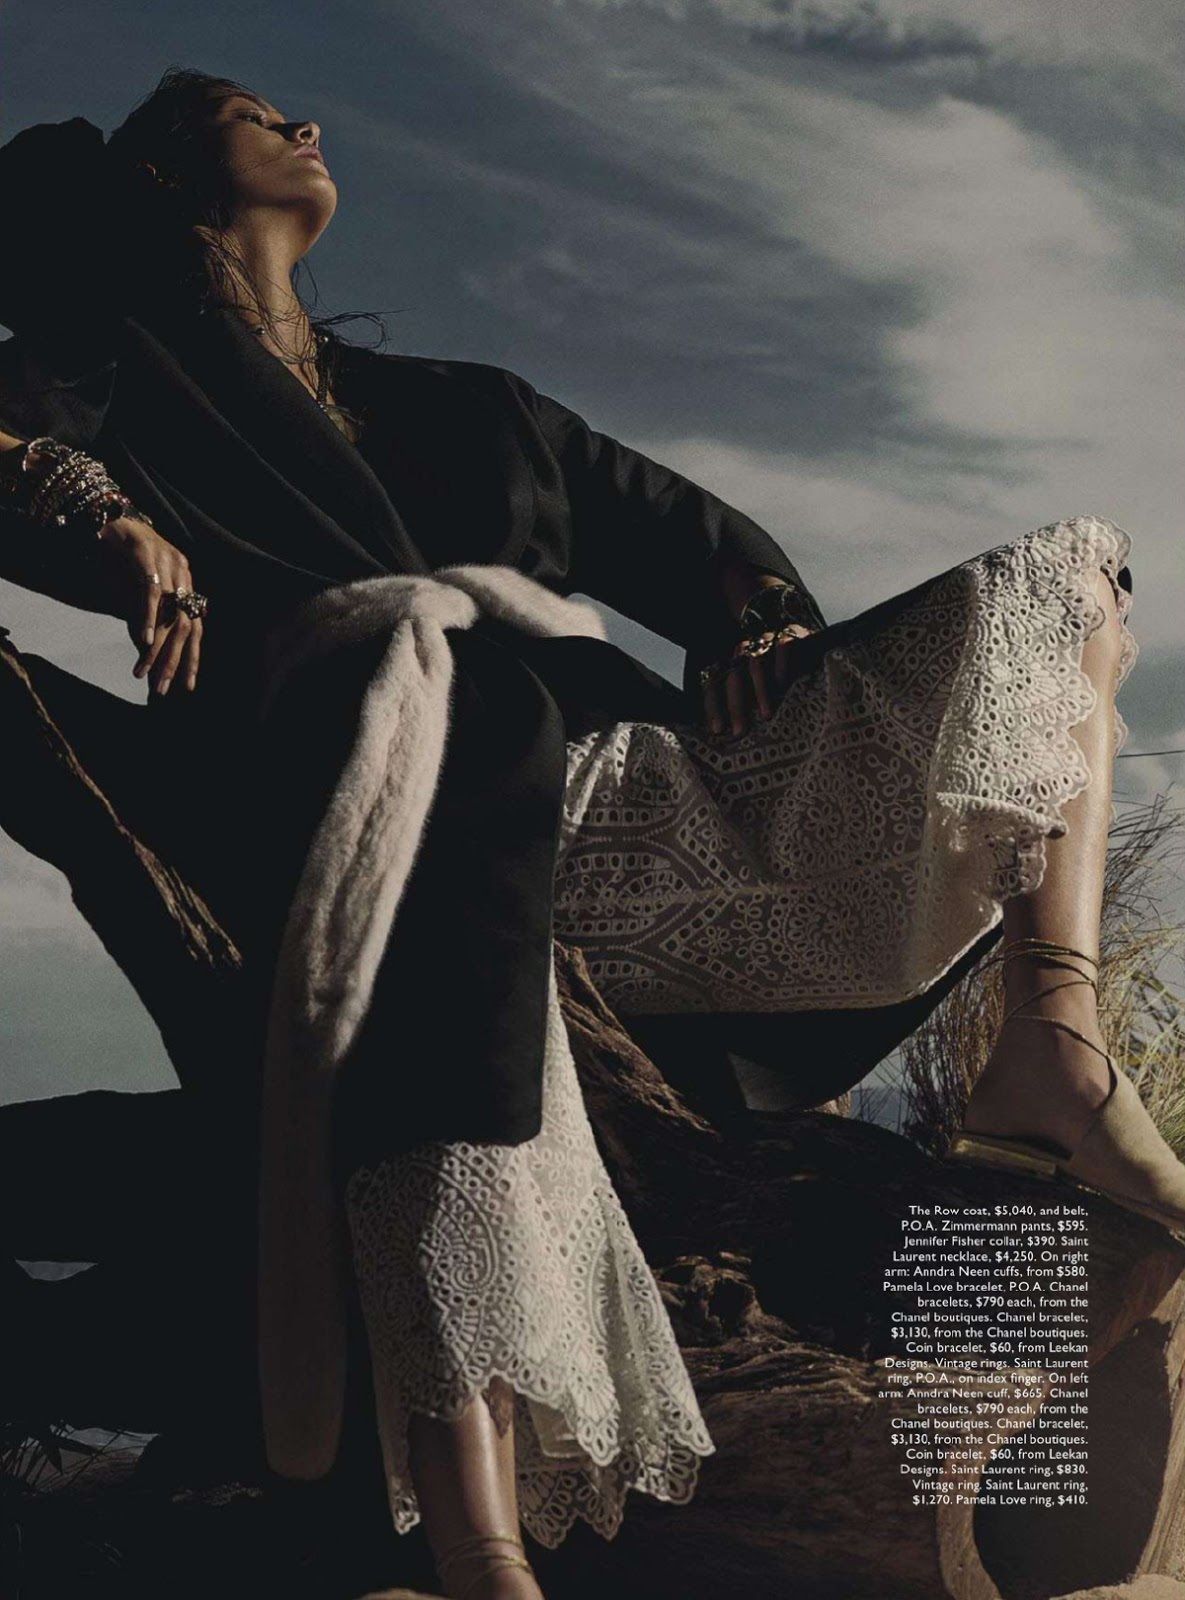 On A Hot Summer's Night: Ronja Furrer By Robbie Fimmano For Vogue Australia January 2015